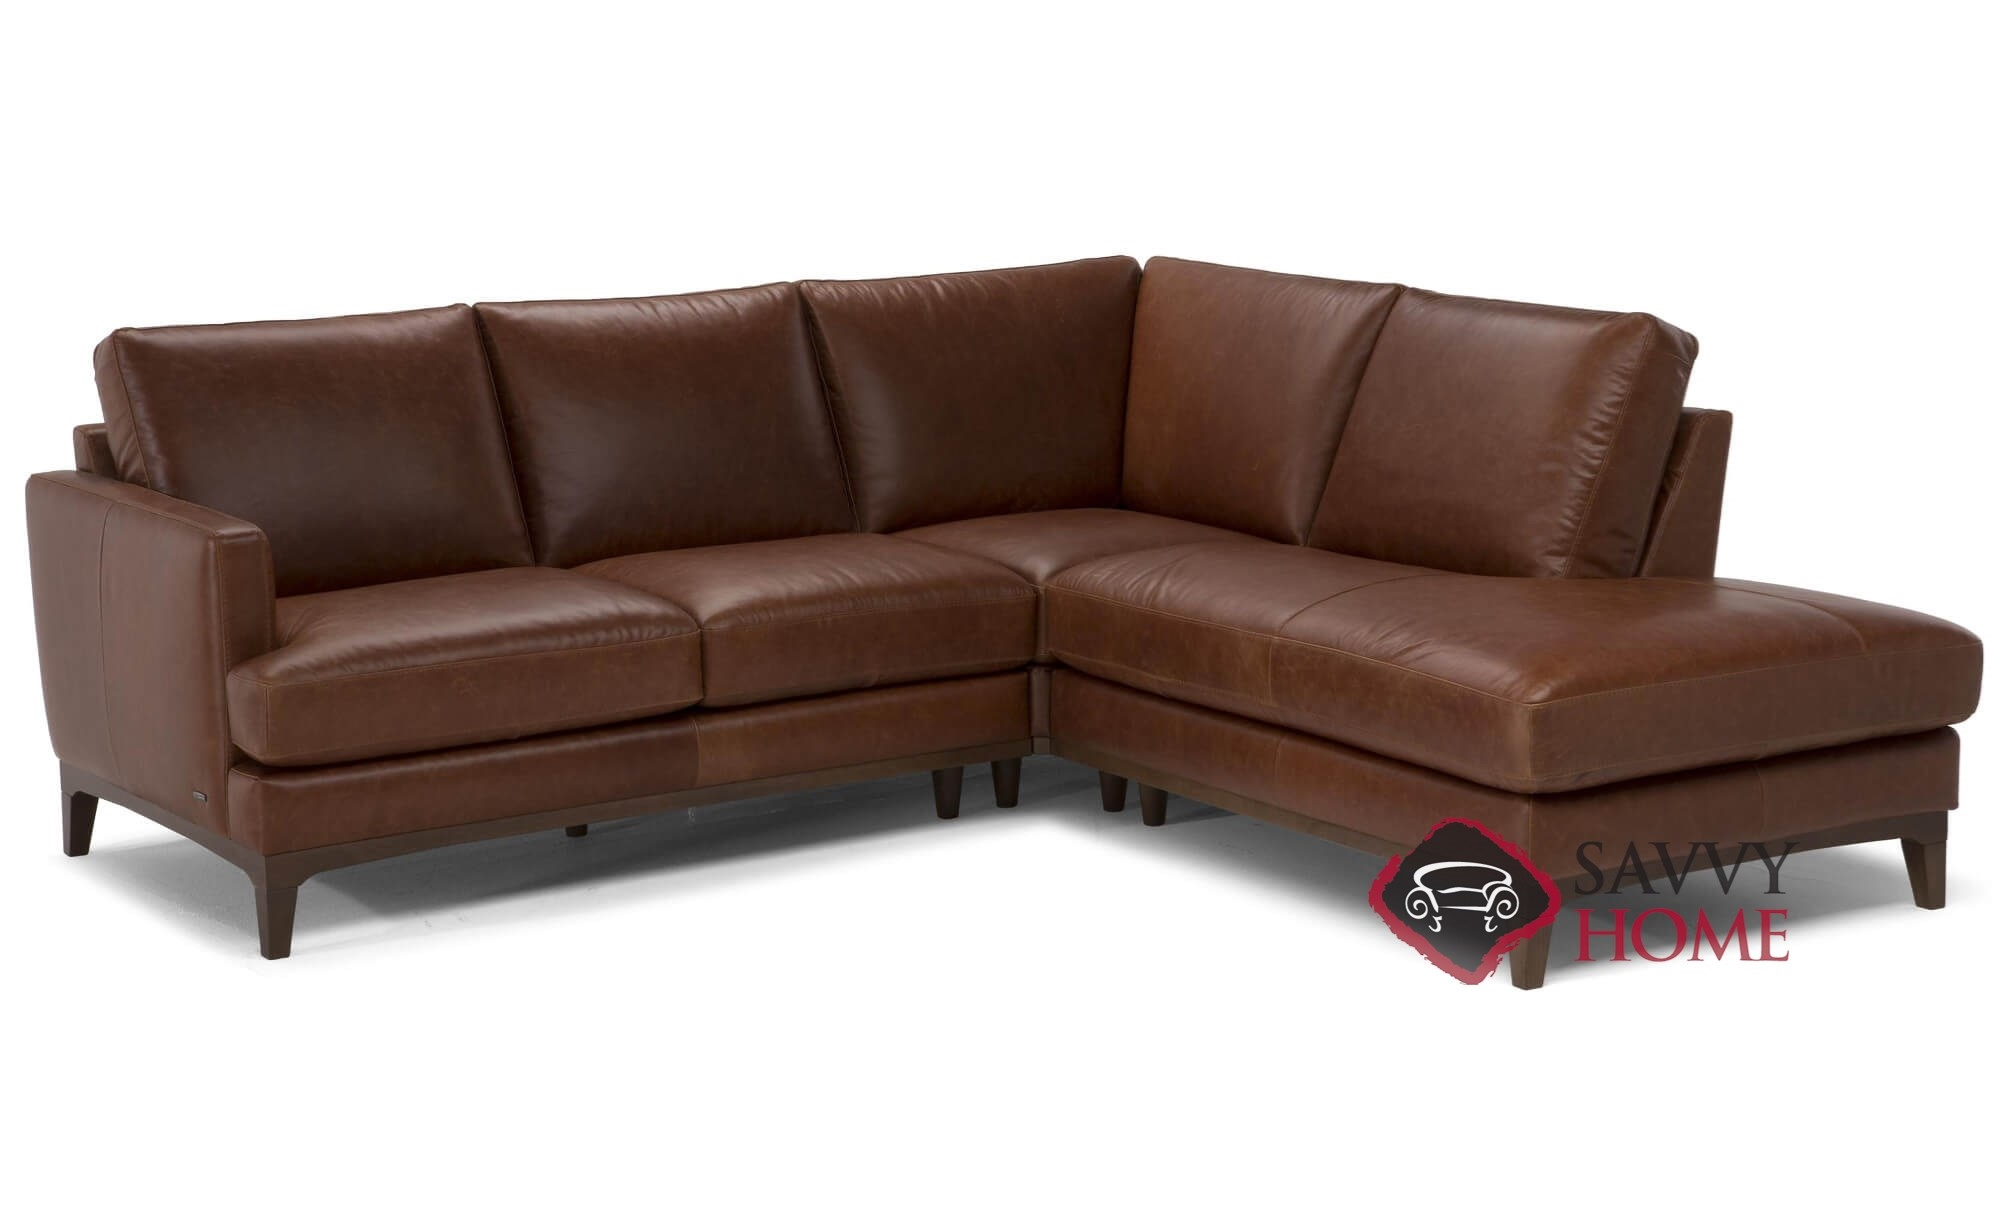 Bevera Leather Stationary Chaise Sectional By Natuzzi Is Fully Customizable By You Savvyhomestore Com